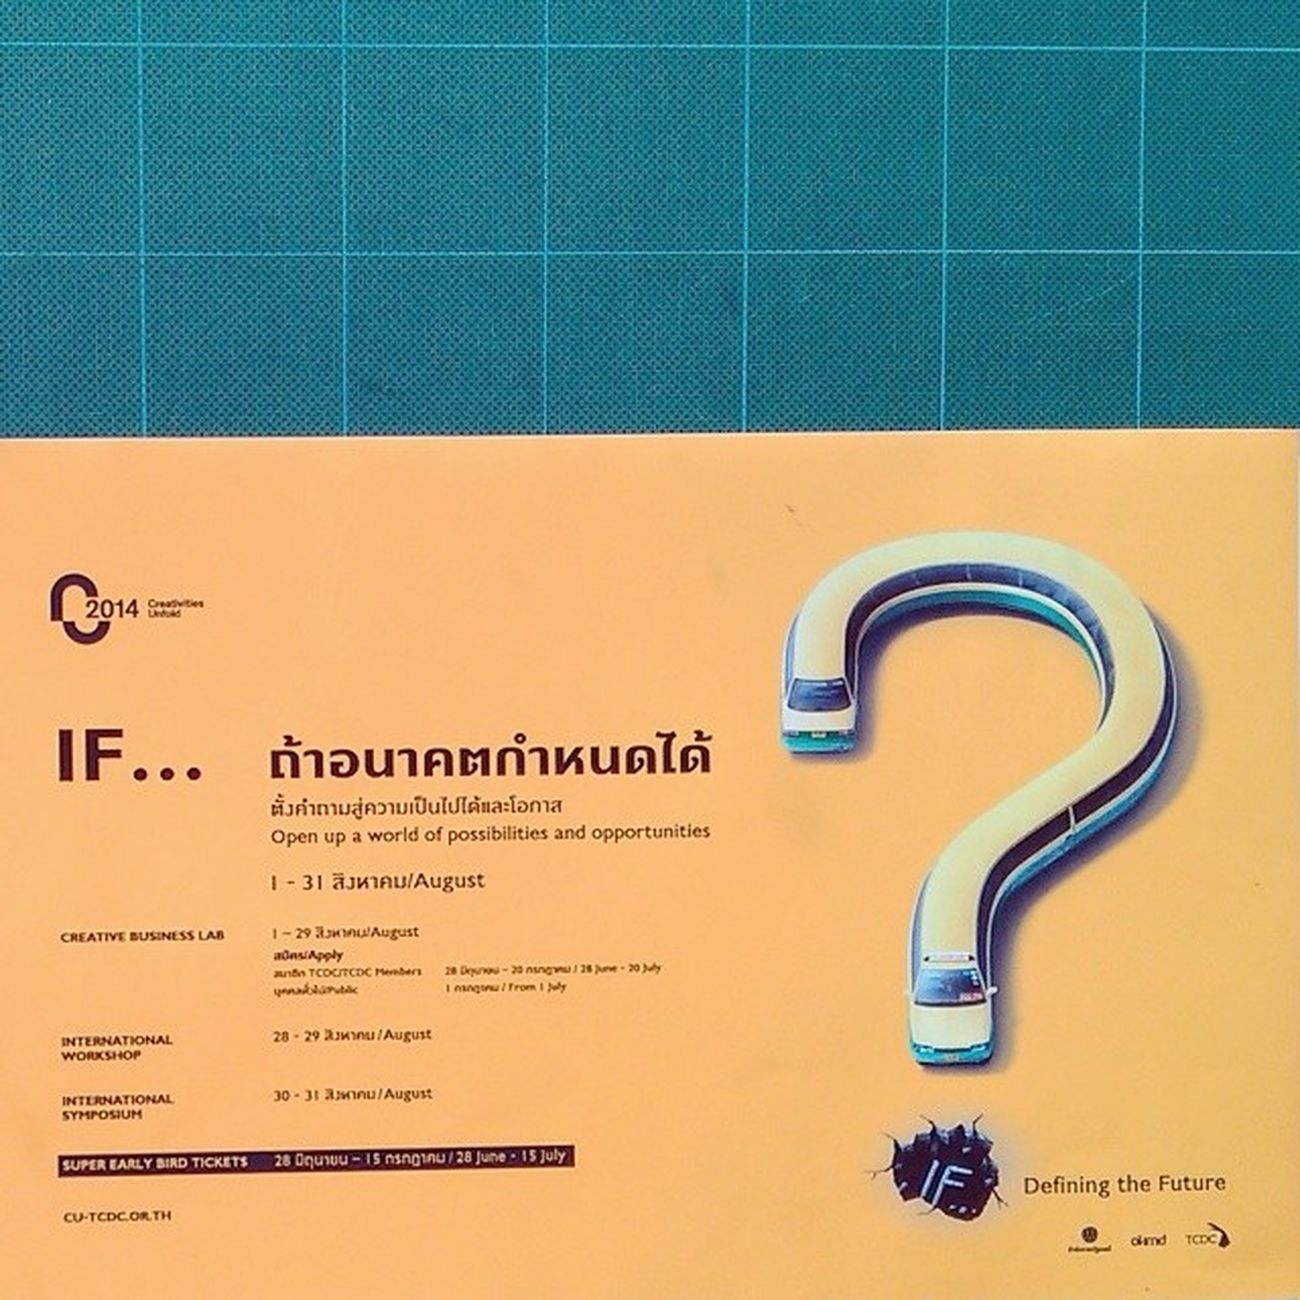 IF... Defining the future. Cu2014 TDCD Creativities Unfold Bangkok Adayinthailand NokiaXL